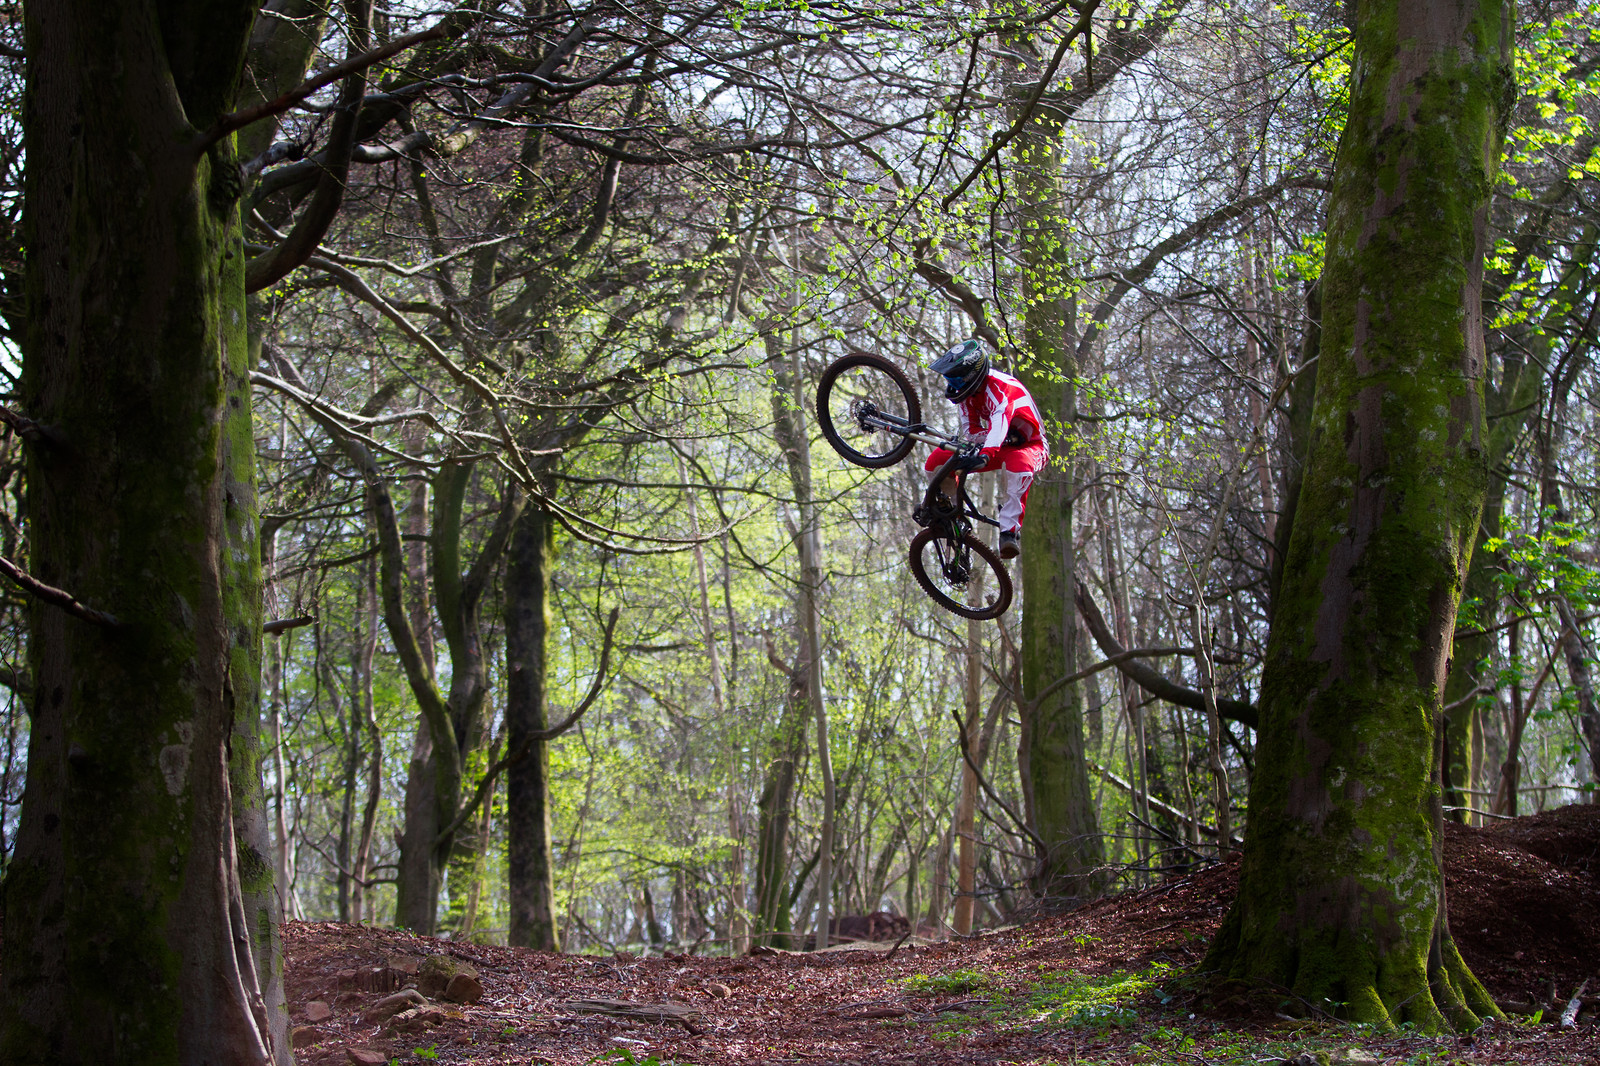 footloose - Wayne DC - Mountain Biking Pictures - Vital MTB